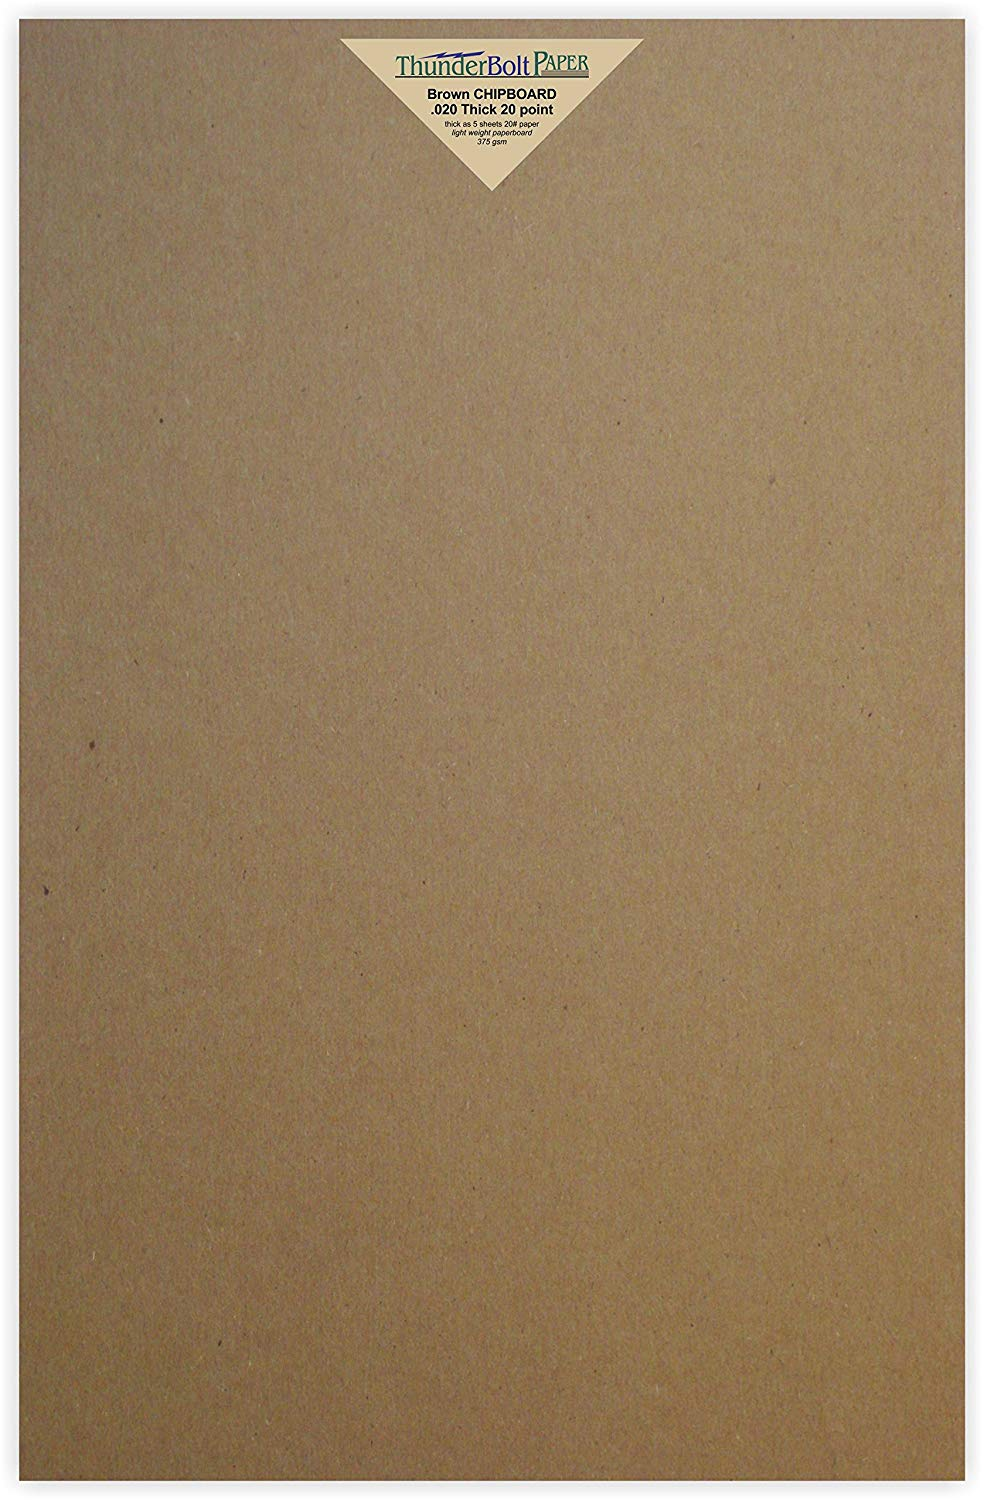 40 pack HGP 5 x 7 Chipboard Sheets for Arts and Crafts Scrapbooking Backing Mounting Board Picture Framing Shipping Cardboard